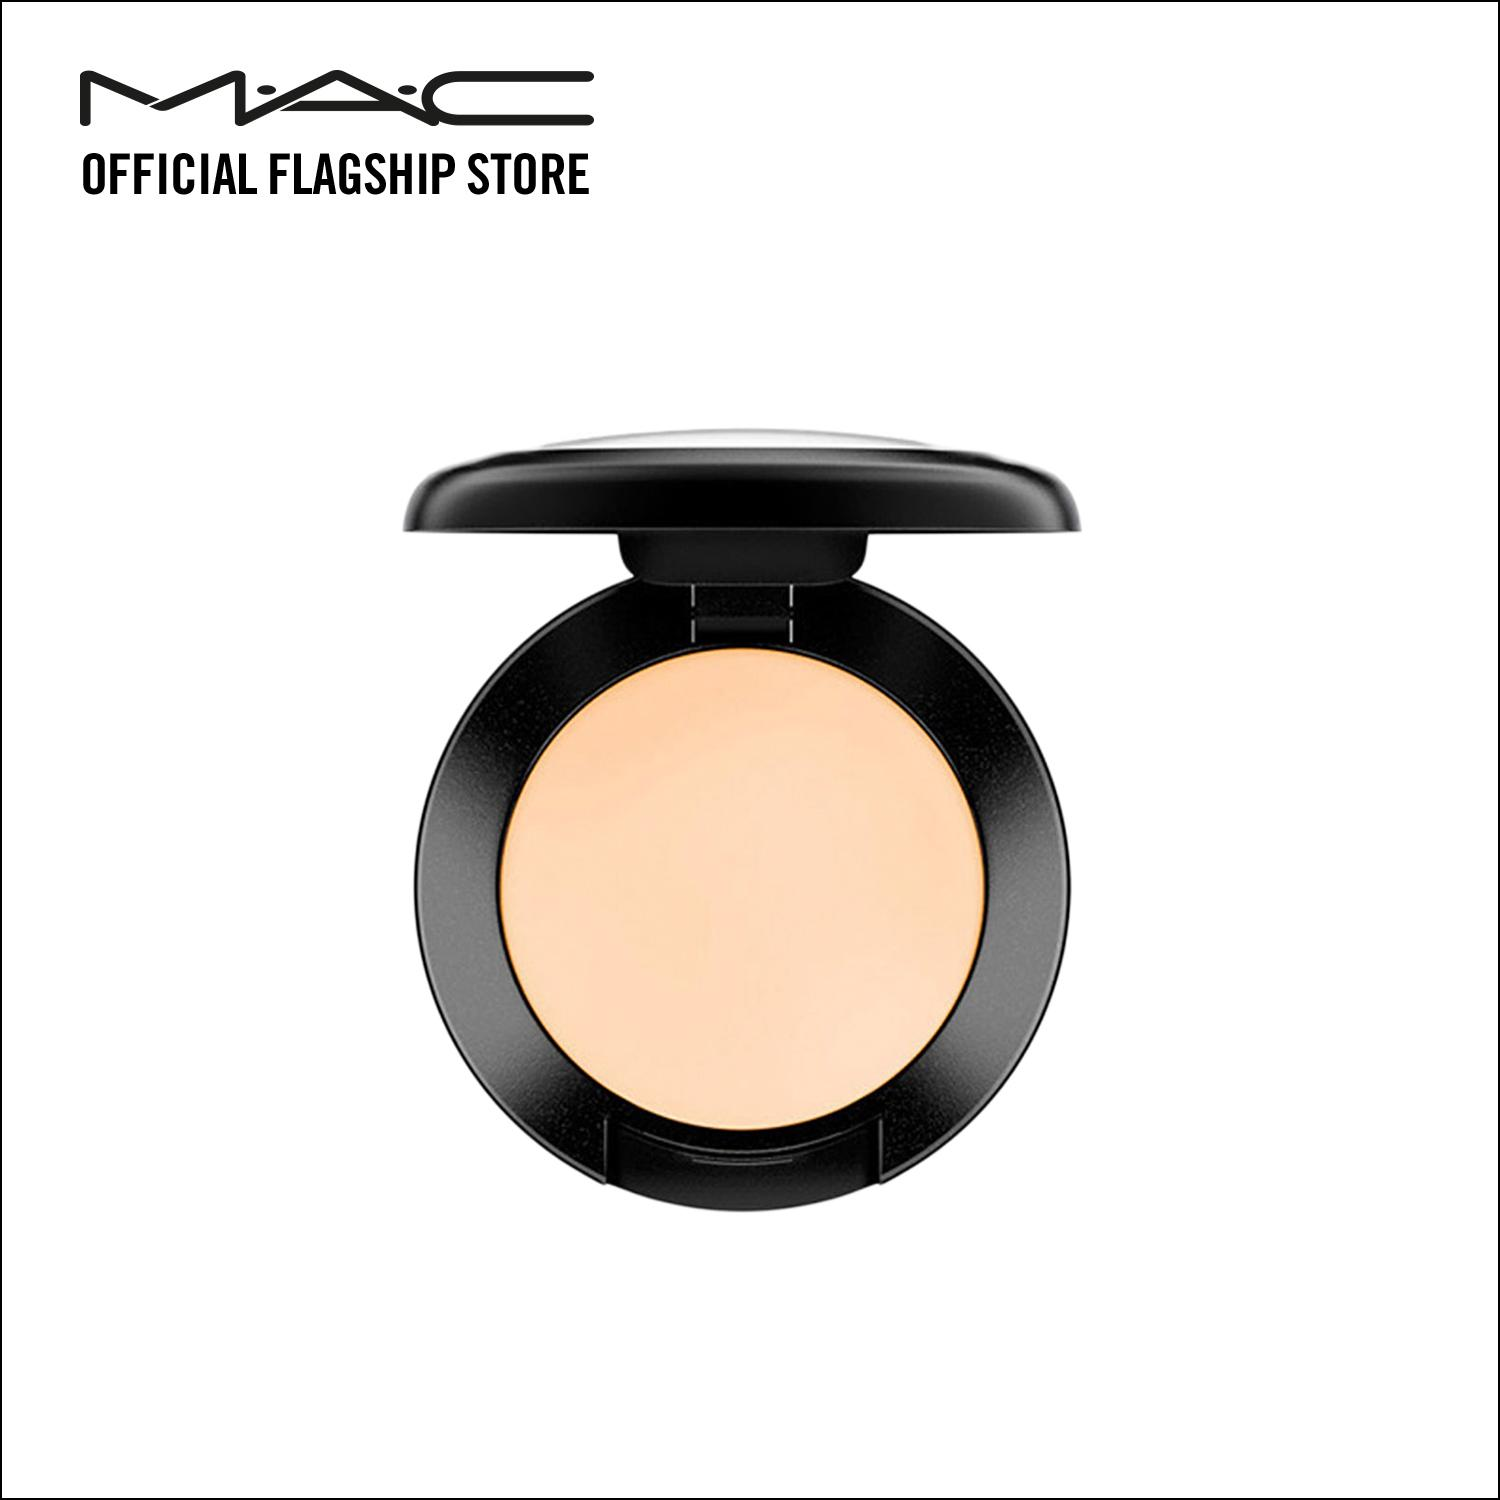 MAC STUDIO FINISH SPF 35 CONCEALER - NC20 Philippines